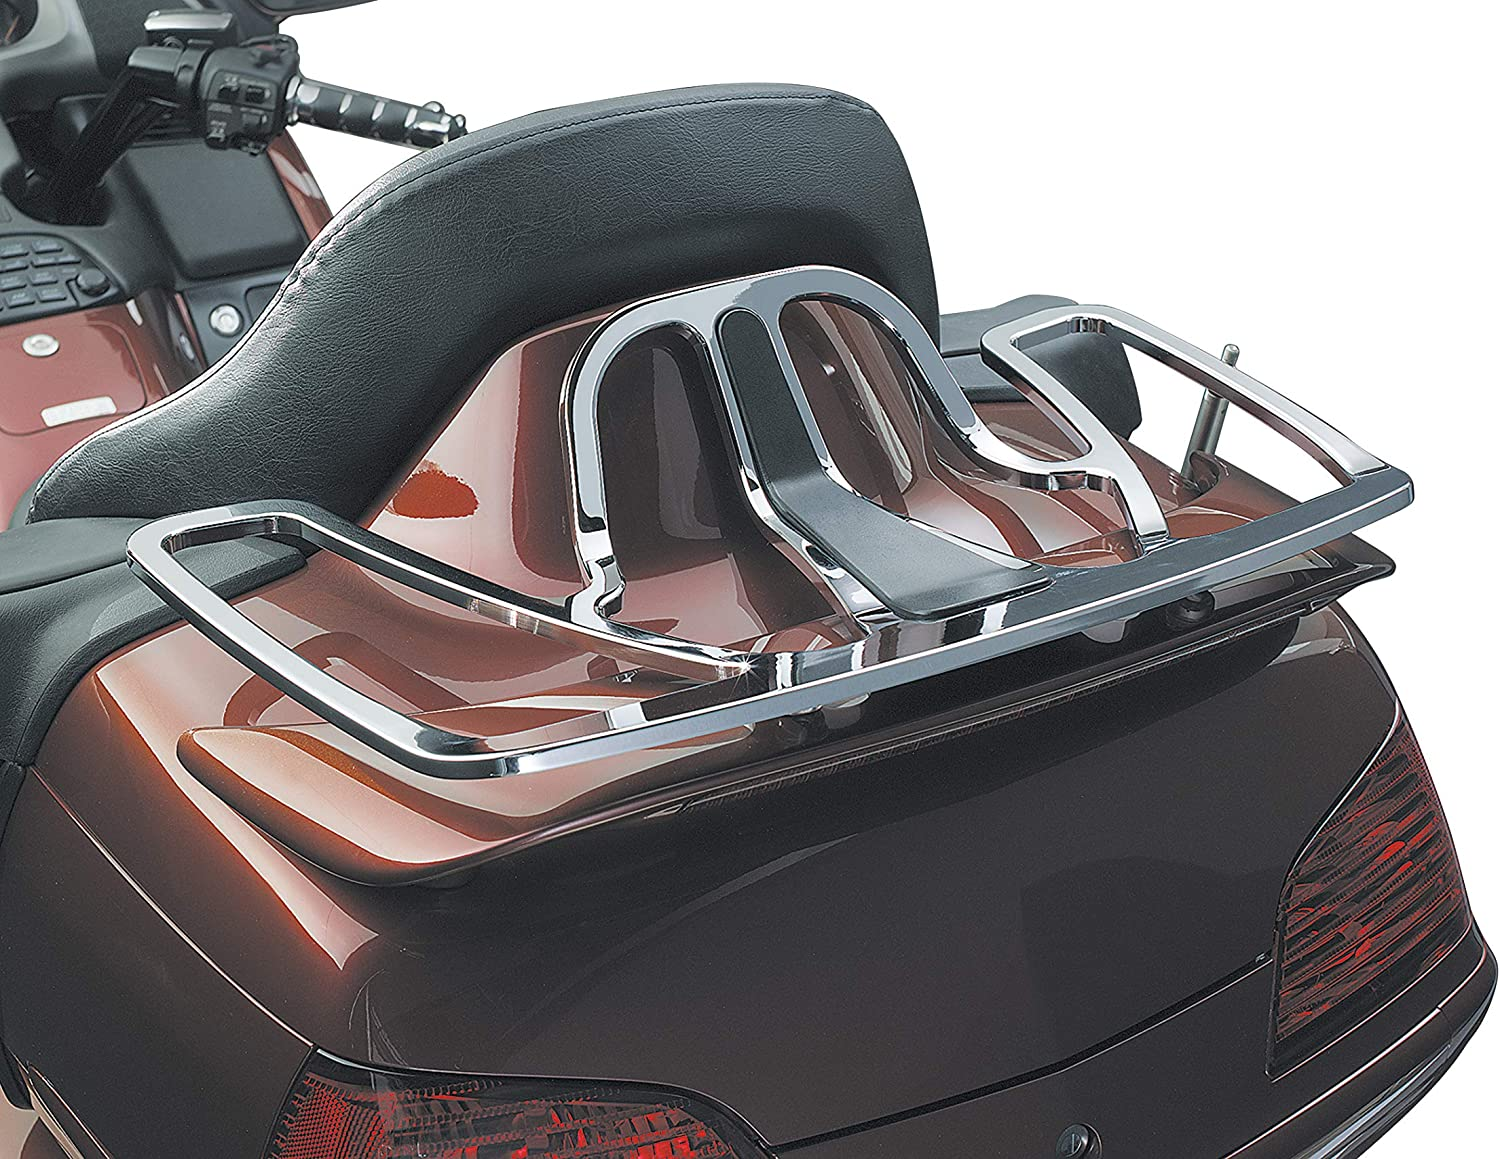 Tour Trunk Luggage//Storage Rack for 2001-19 Honda Gold Wing GL1800 Motorcycles Kuryakyn 7151 Motorcycle Accessory Chrome